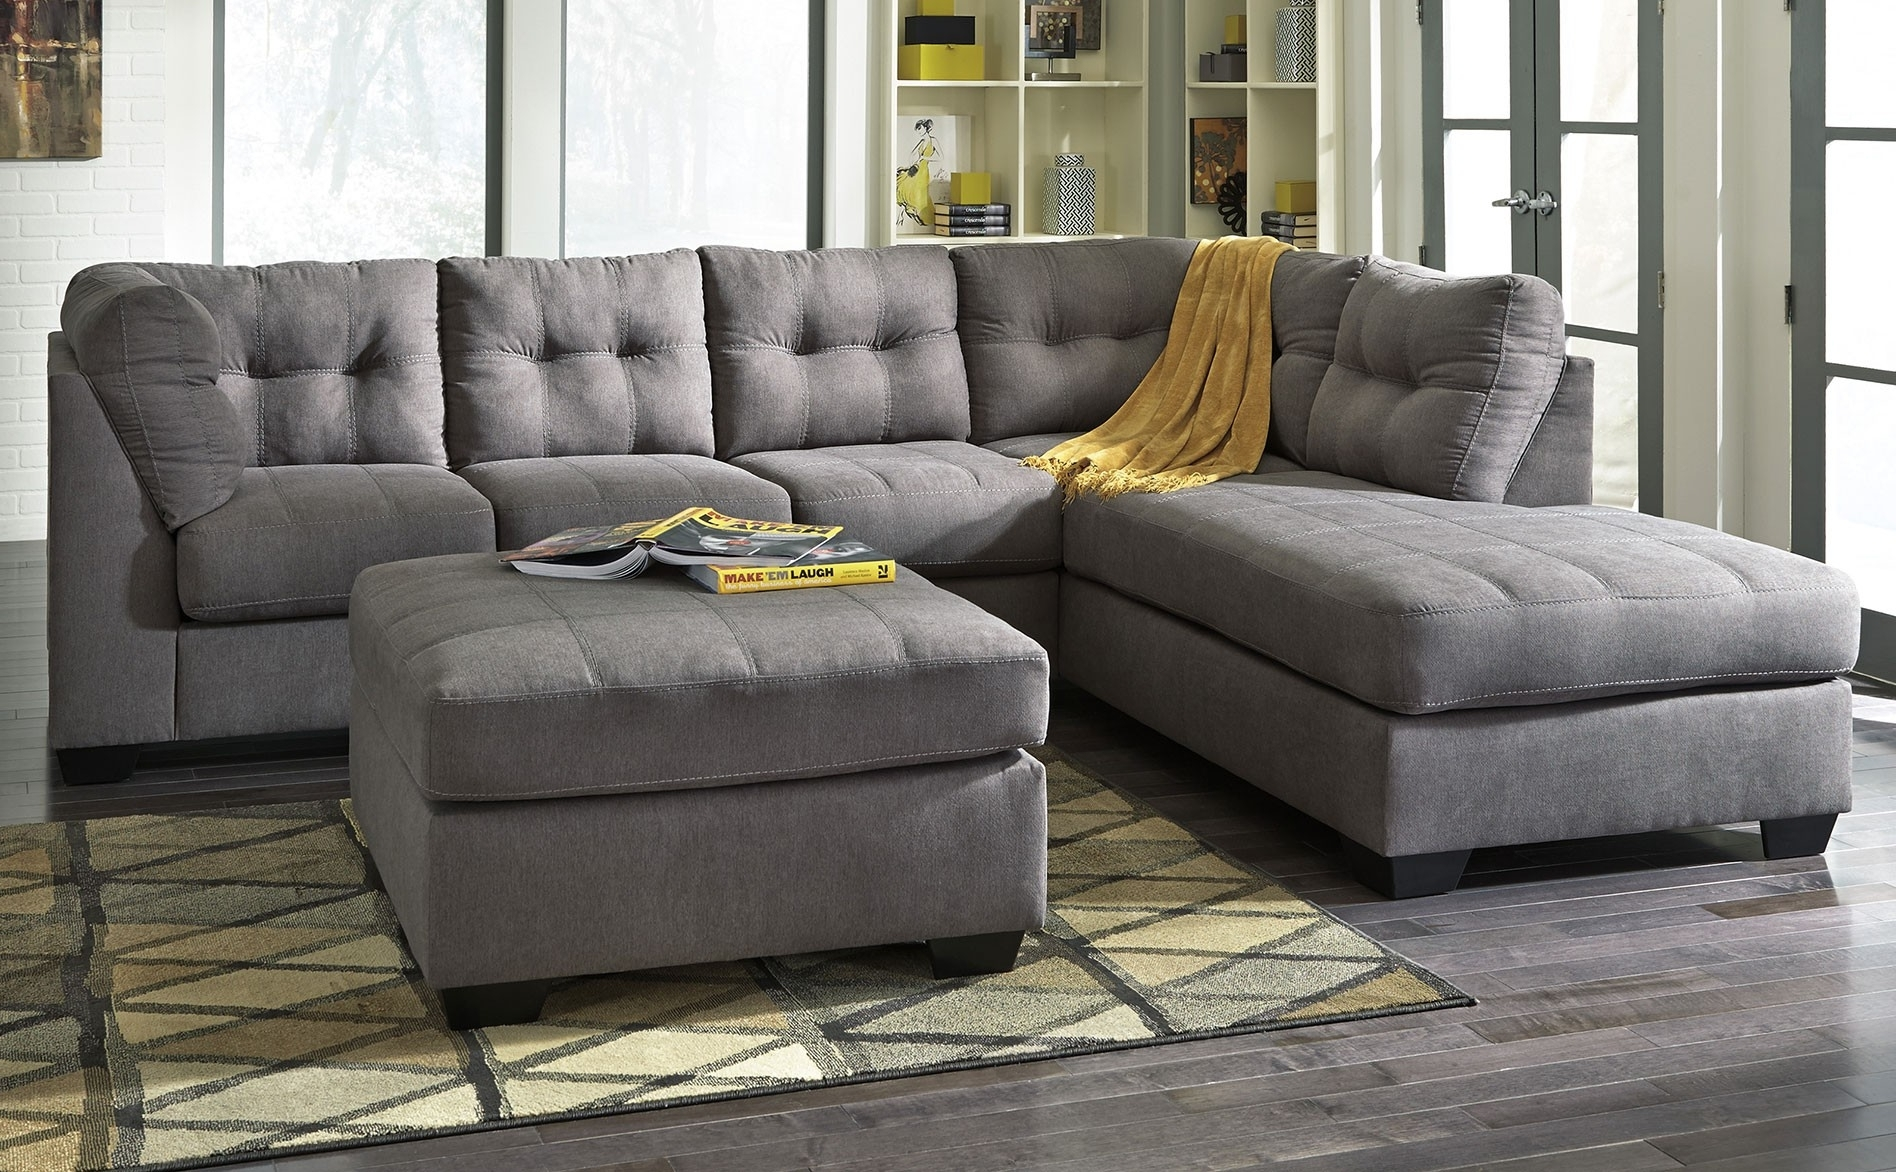 2018 Sectional Sofas Under 400 With Regard To Sofa : Leather Couch Under 500 Sectionals Under 400 Room Couch (View 1 of 20)